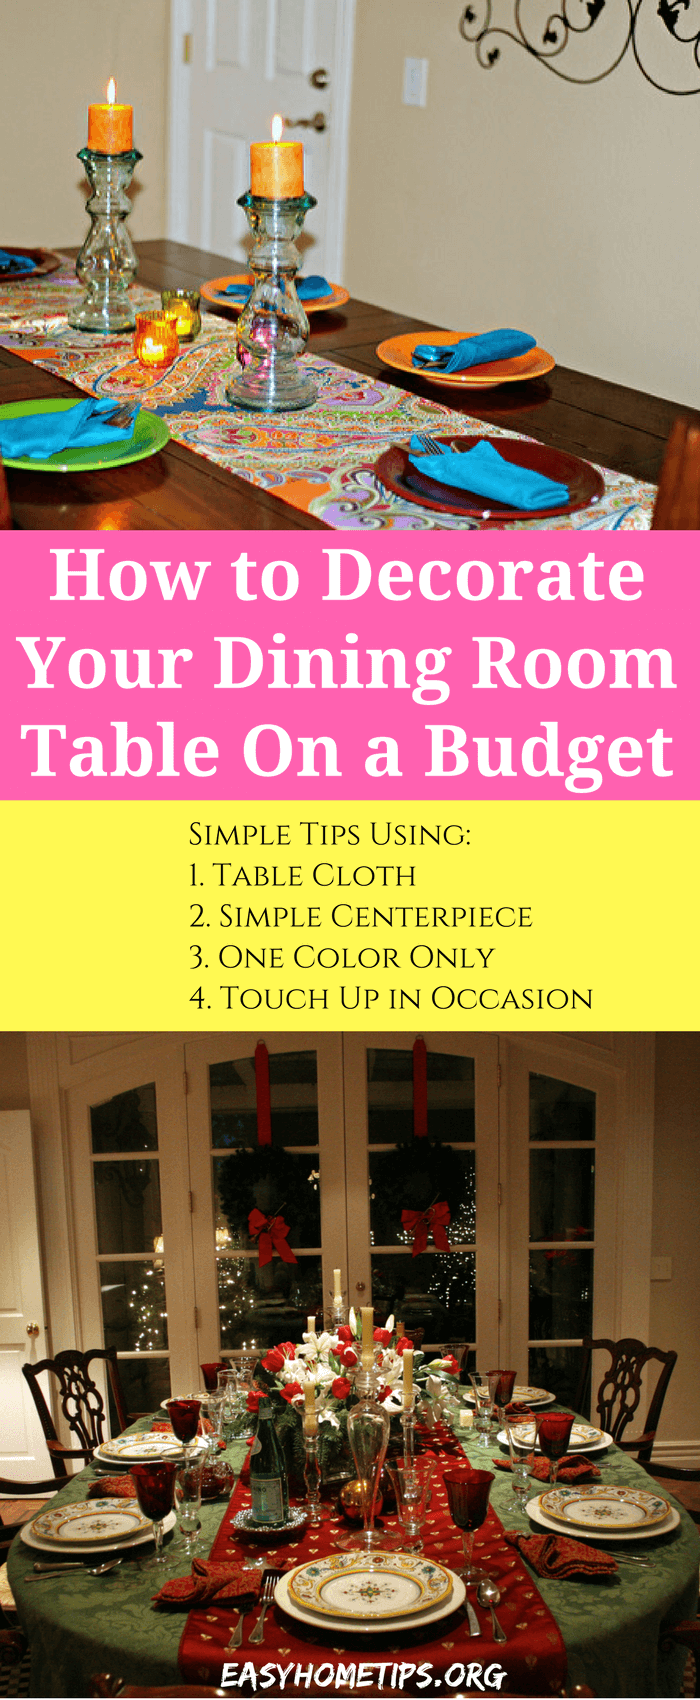 Simple Tips How to Decorate Your Dining Room Table On a Budget